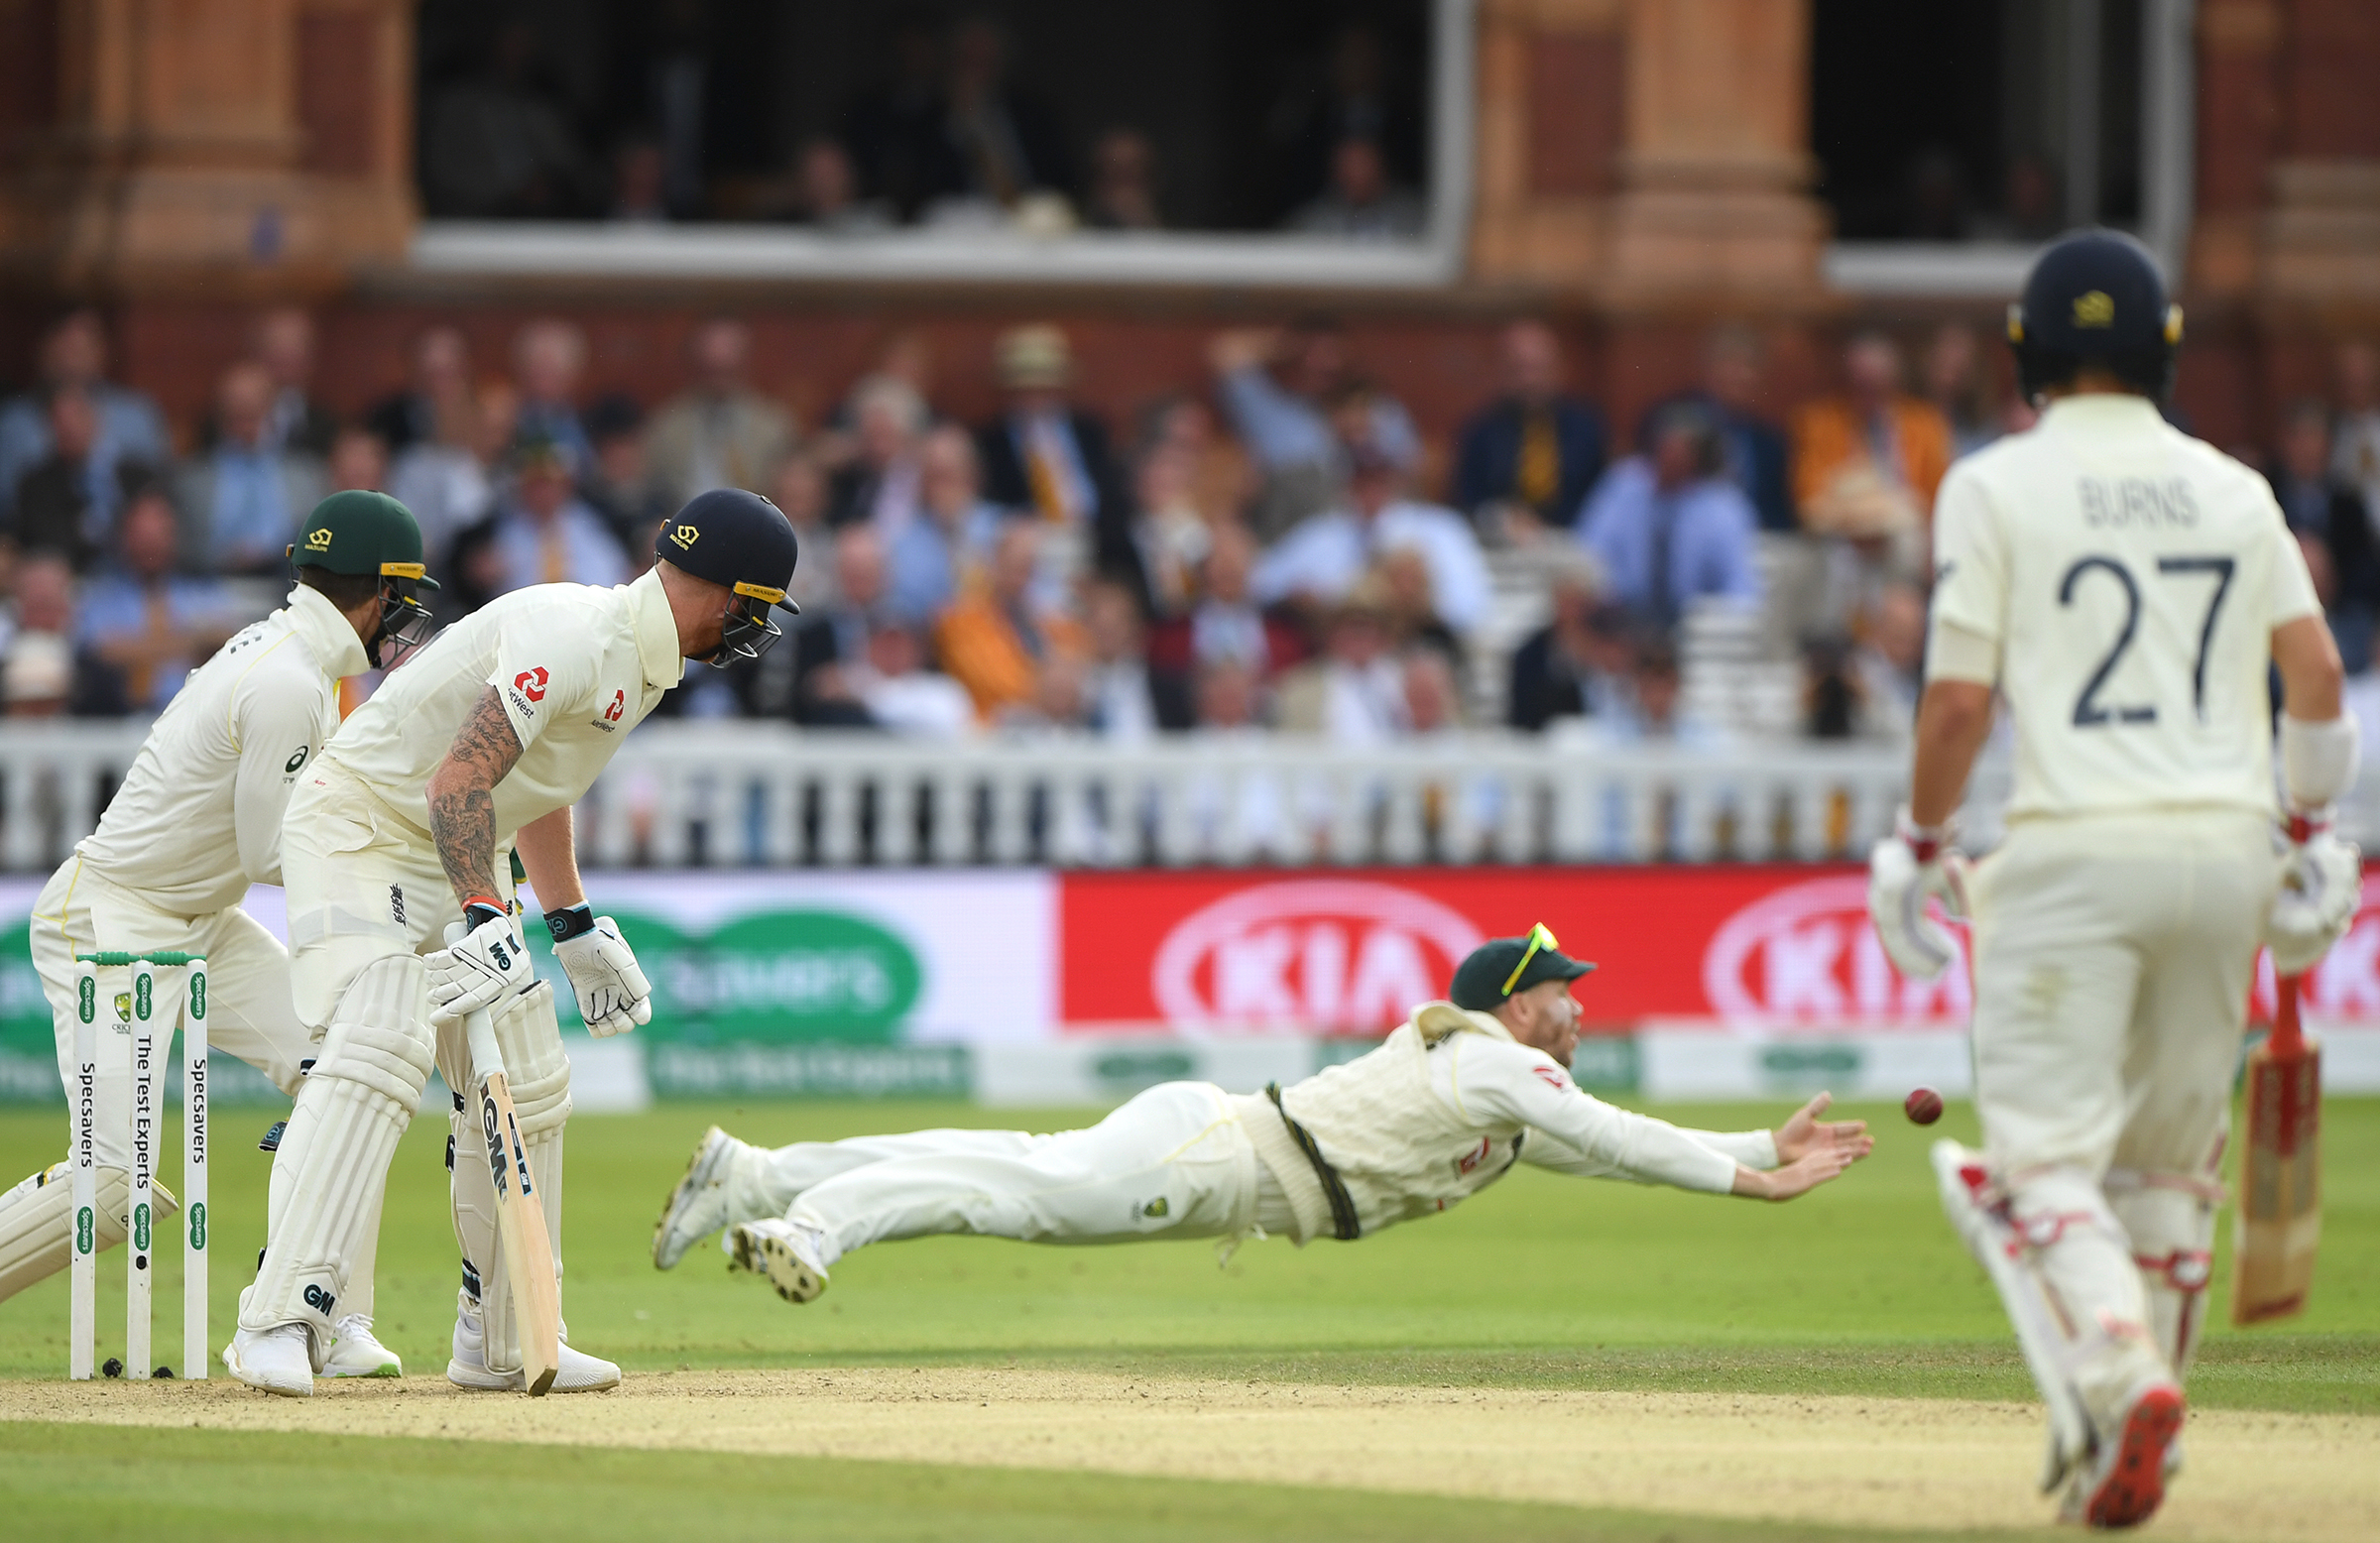 Warner fails to grasp a diving chance off Stokes // Getty